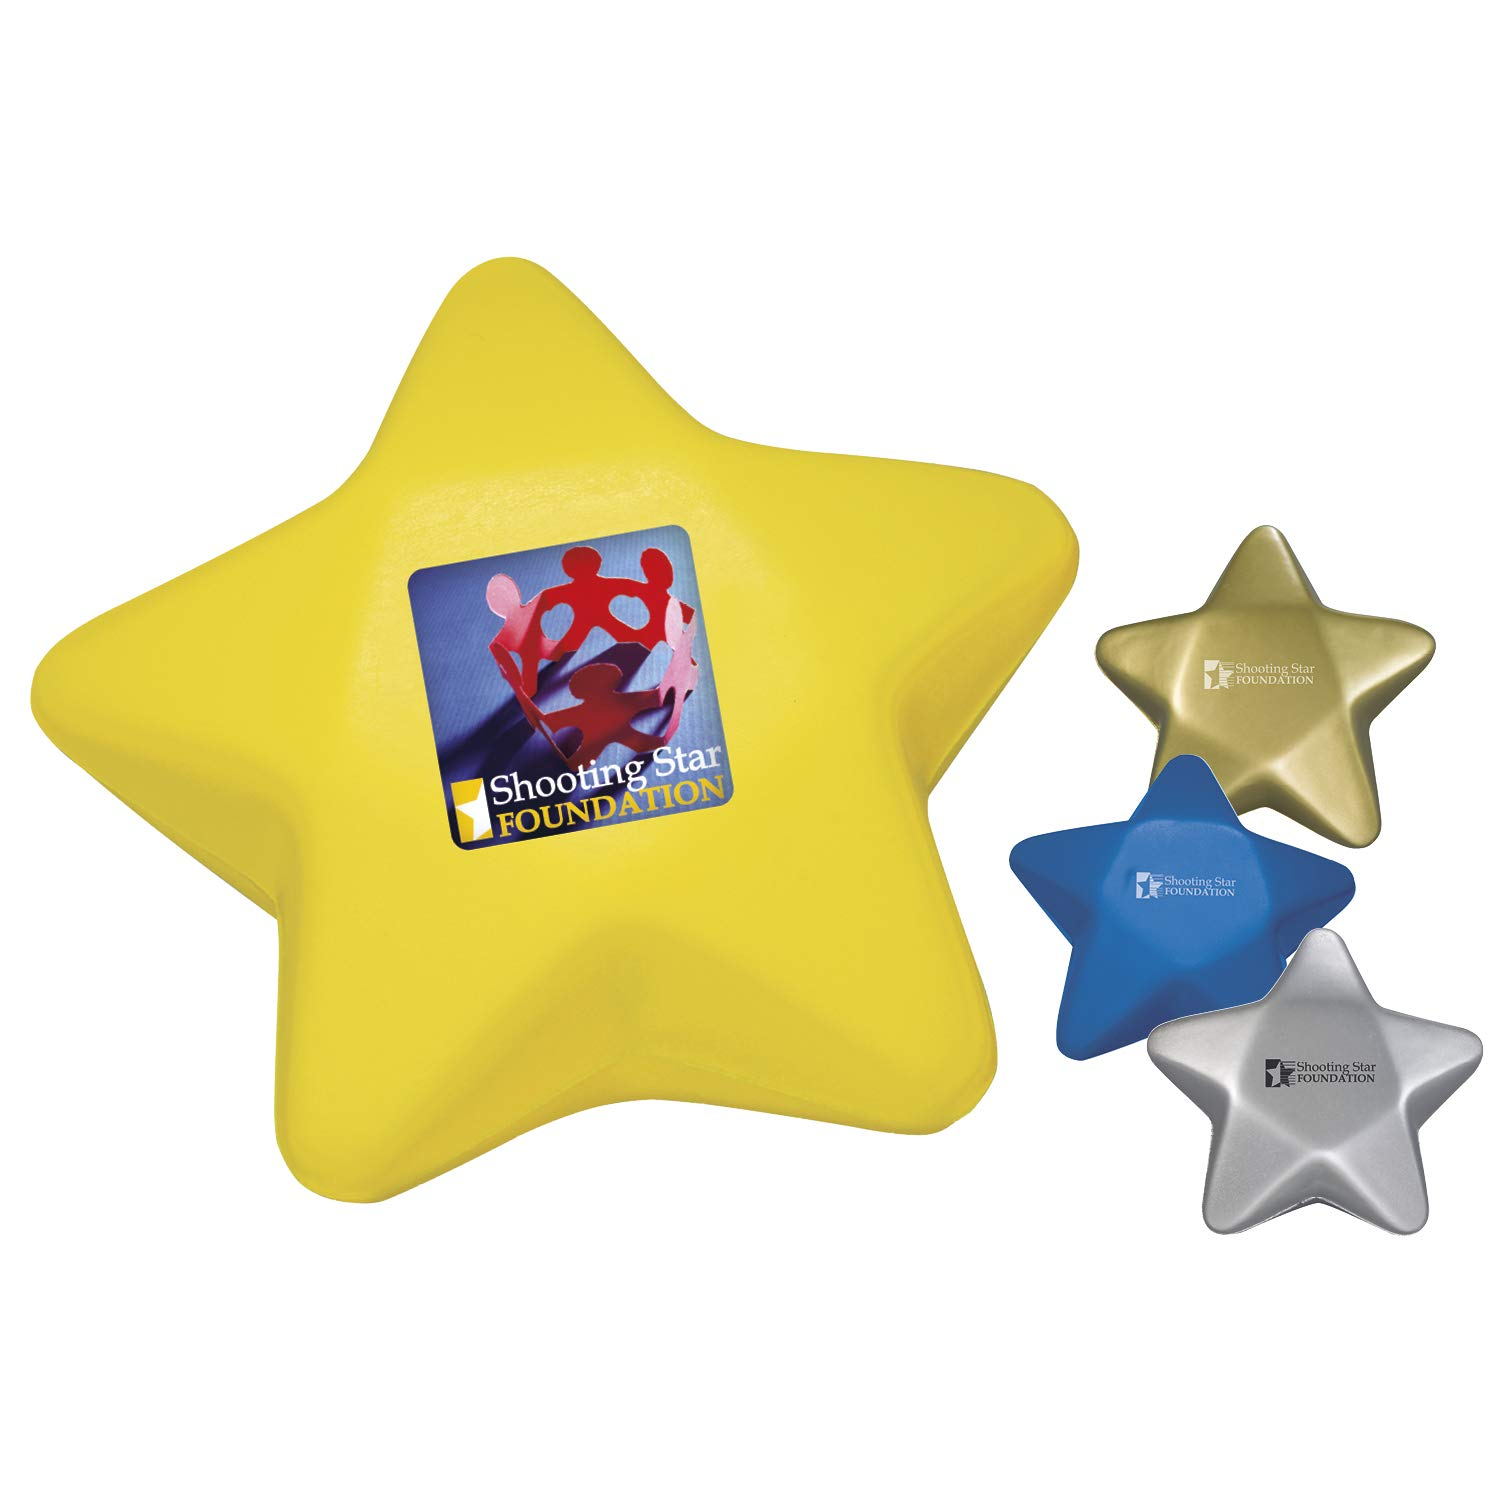 BIC Graphic Star Stress Ball Blue 500 Pack